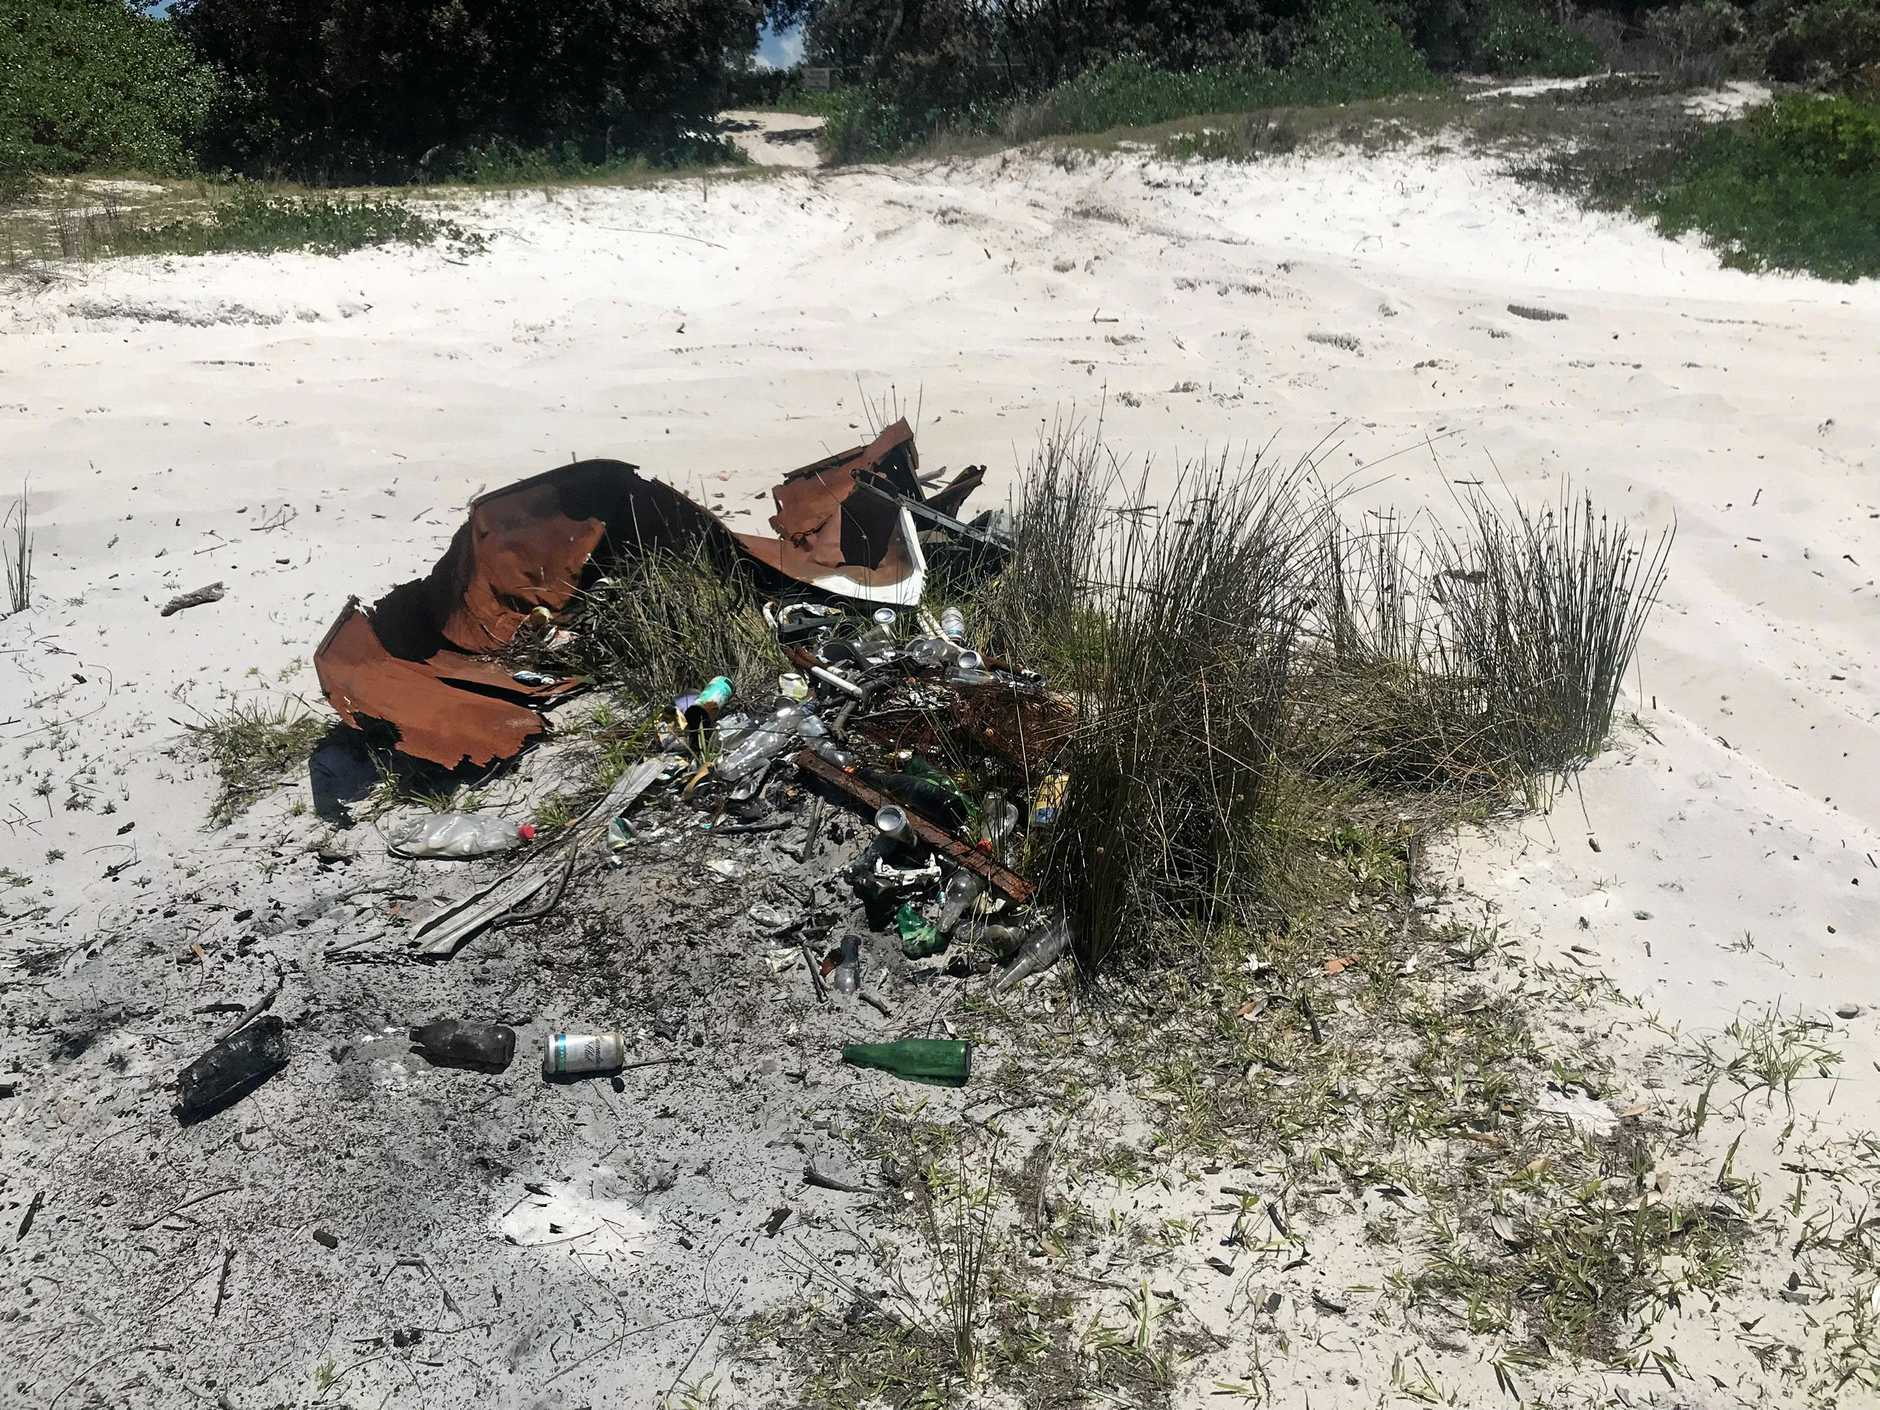 Ballina MP Tamara Smith has condemned the actions of irresponsible 4WDers who have been tearing up beaches at South Ballina.